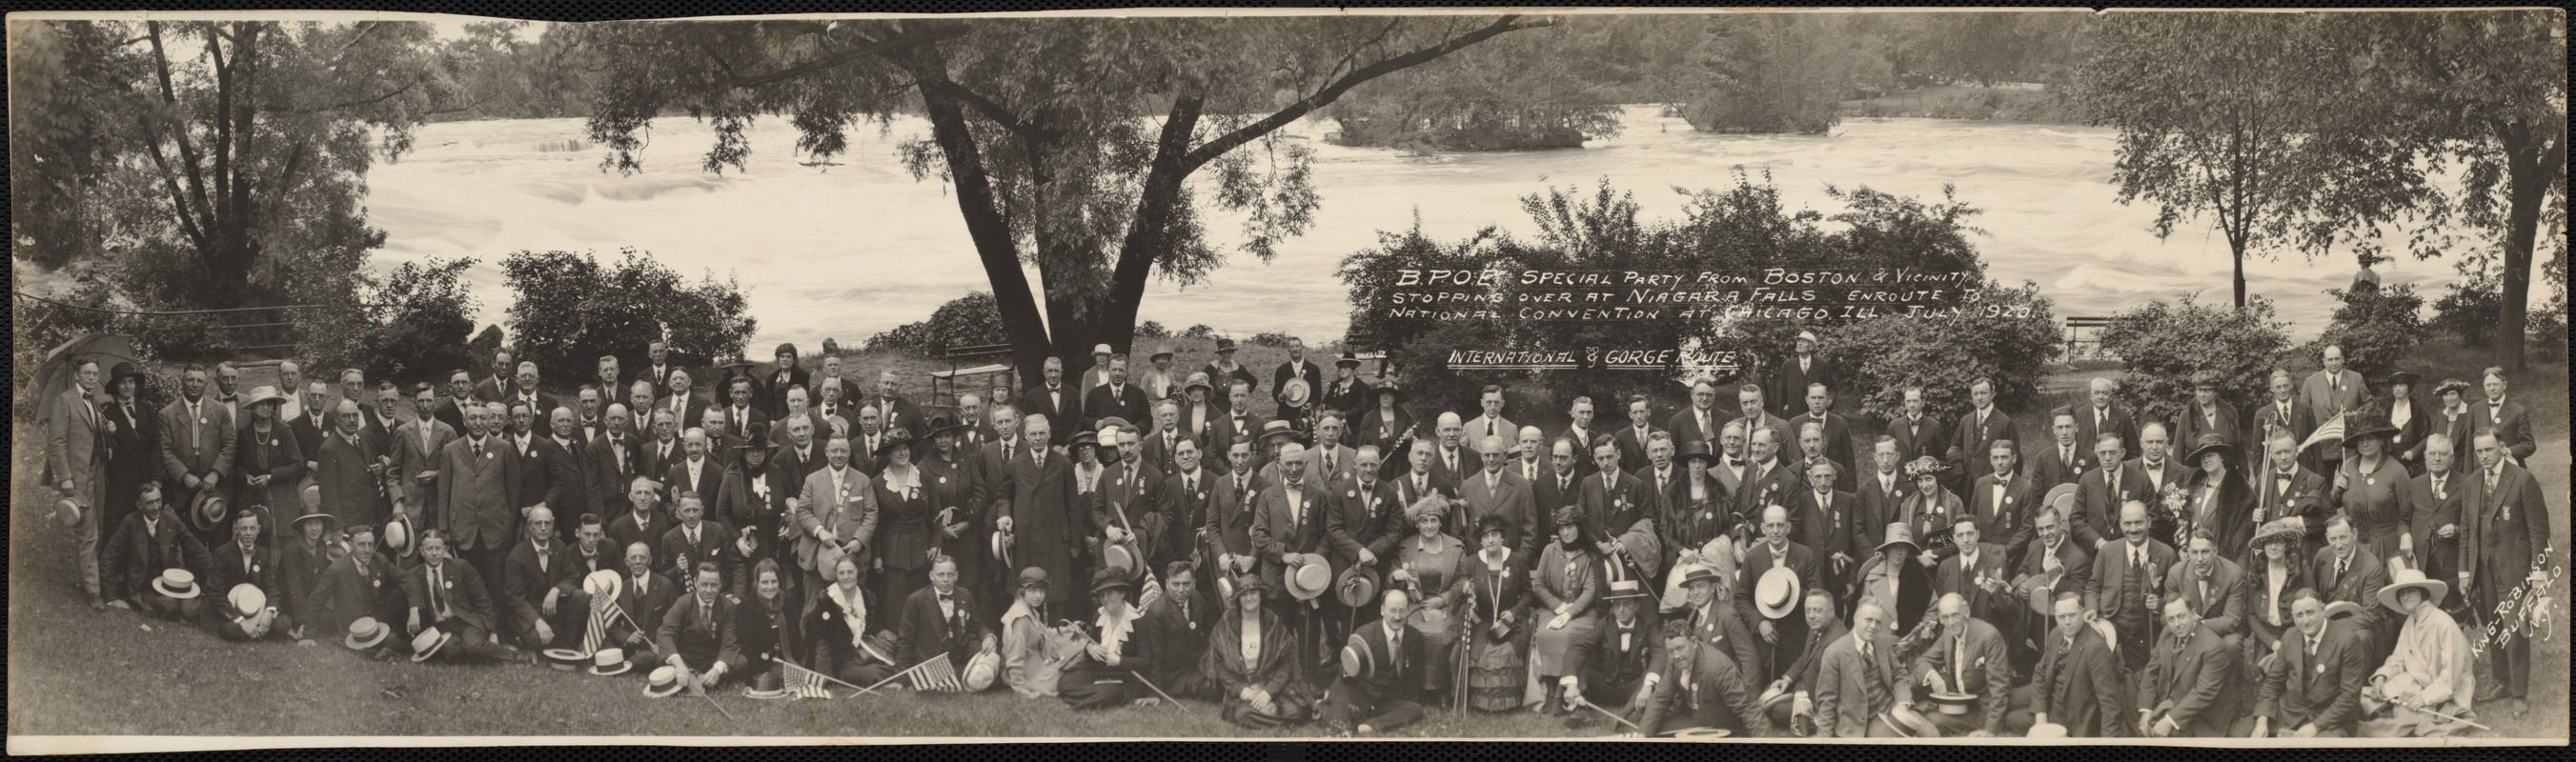 B. P. O. E. special party from Boston & vicinity, stopping over at Niagara Falls enroute [sic] to  National Convention at Chicago